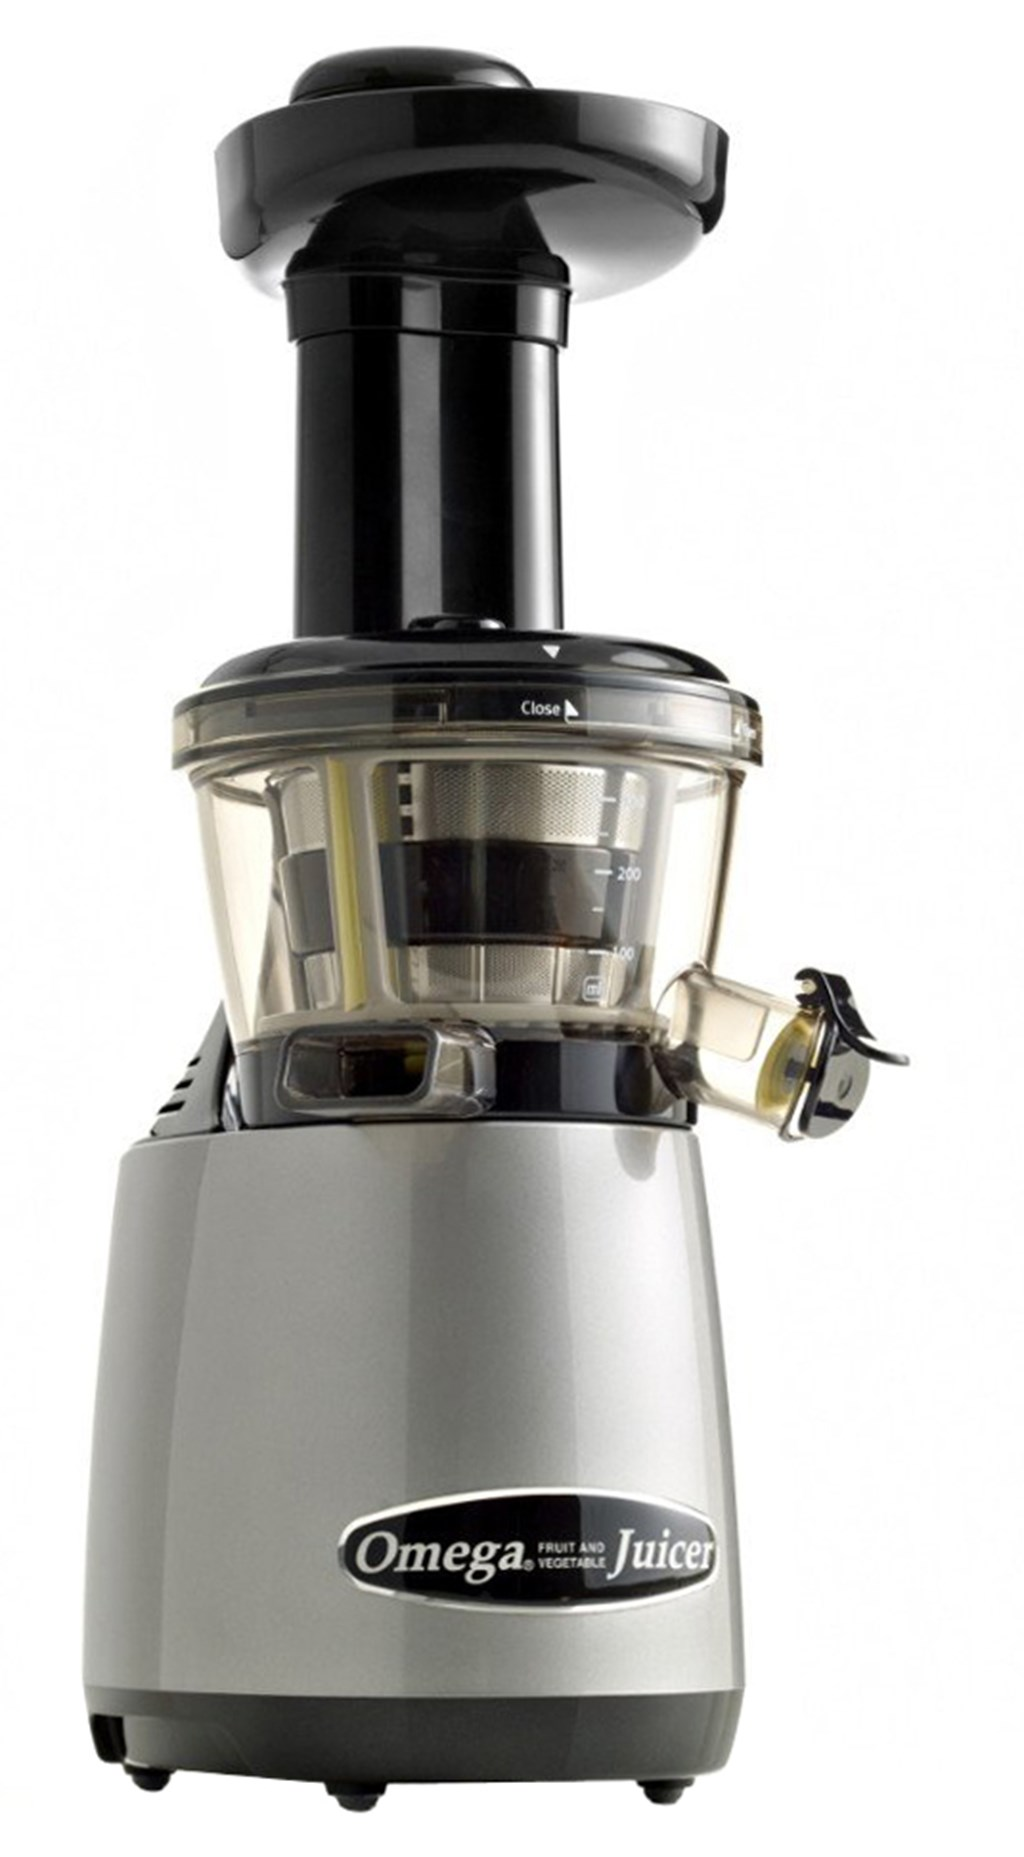 OMEGA SLOW JUICER, VRT402